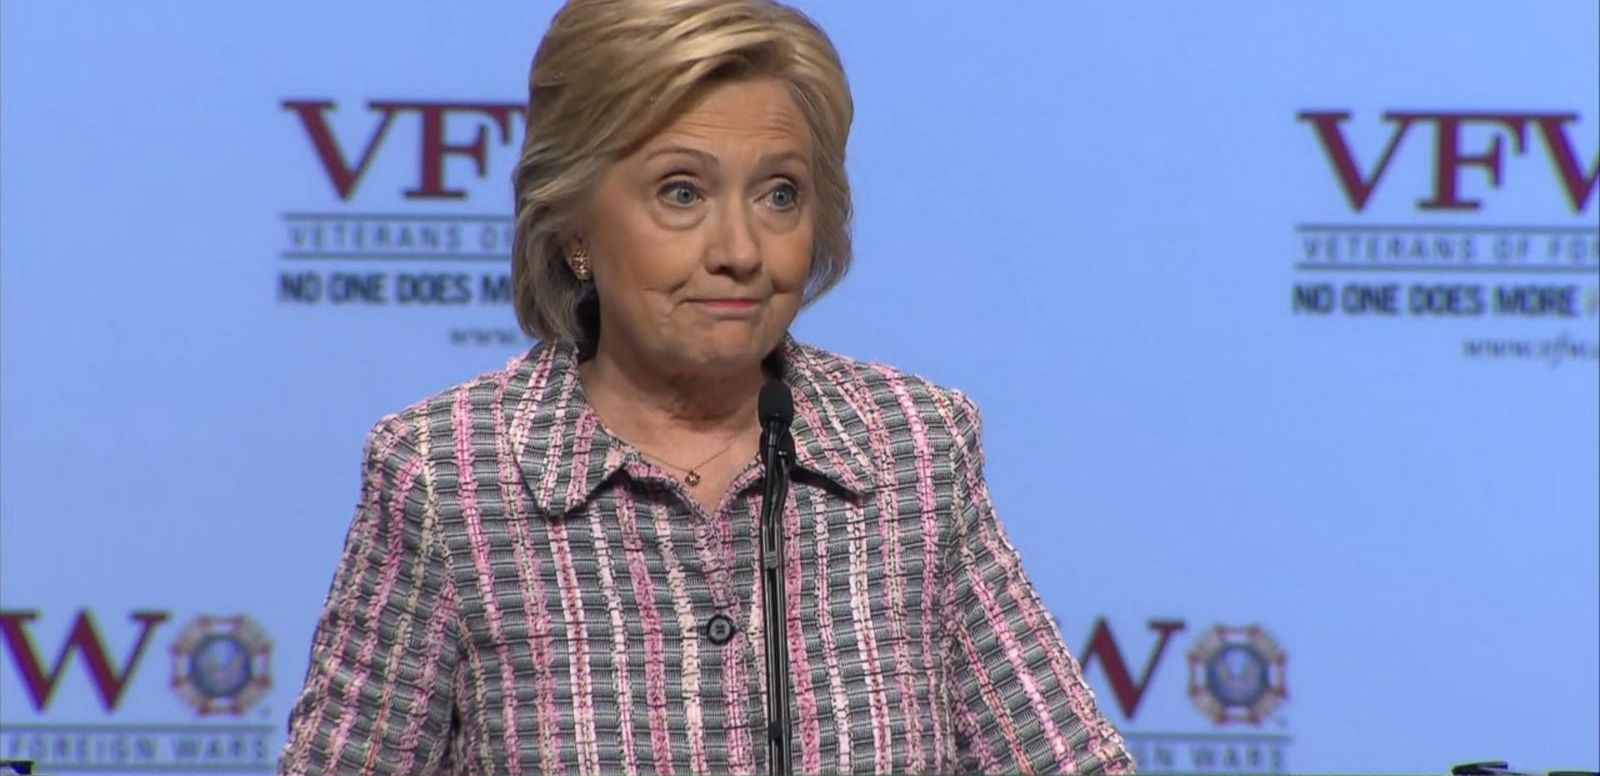 She spoke at a Veterans of Foreign Wars convention on Monday.